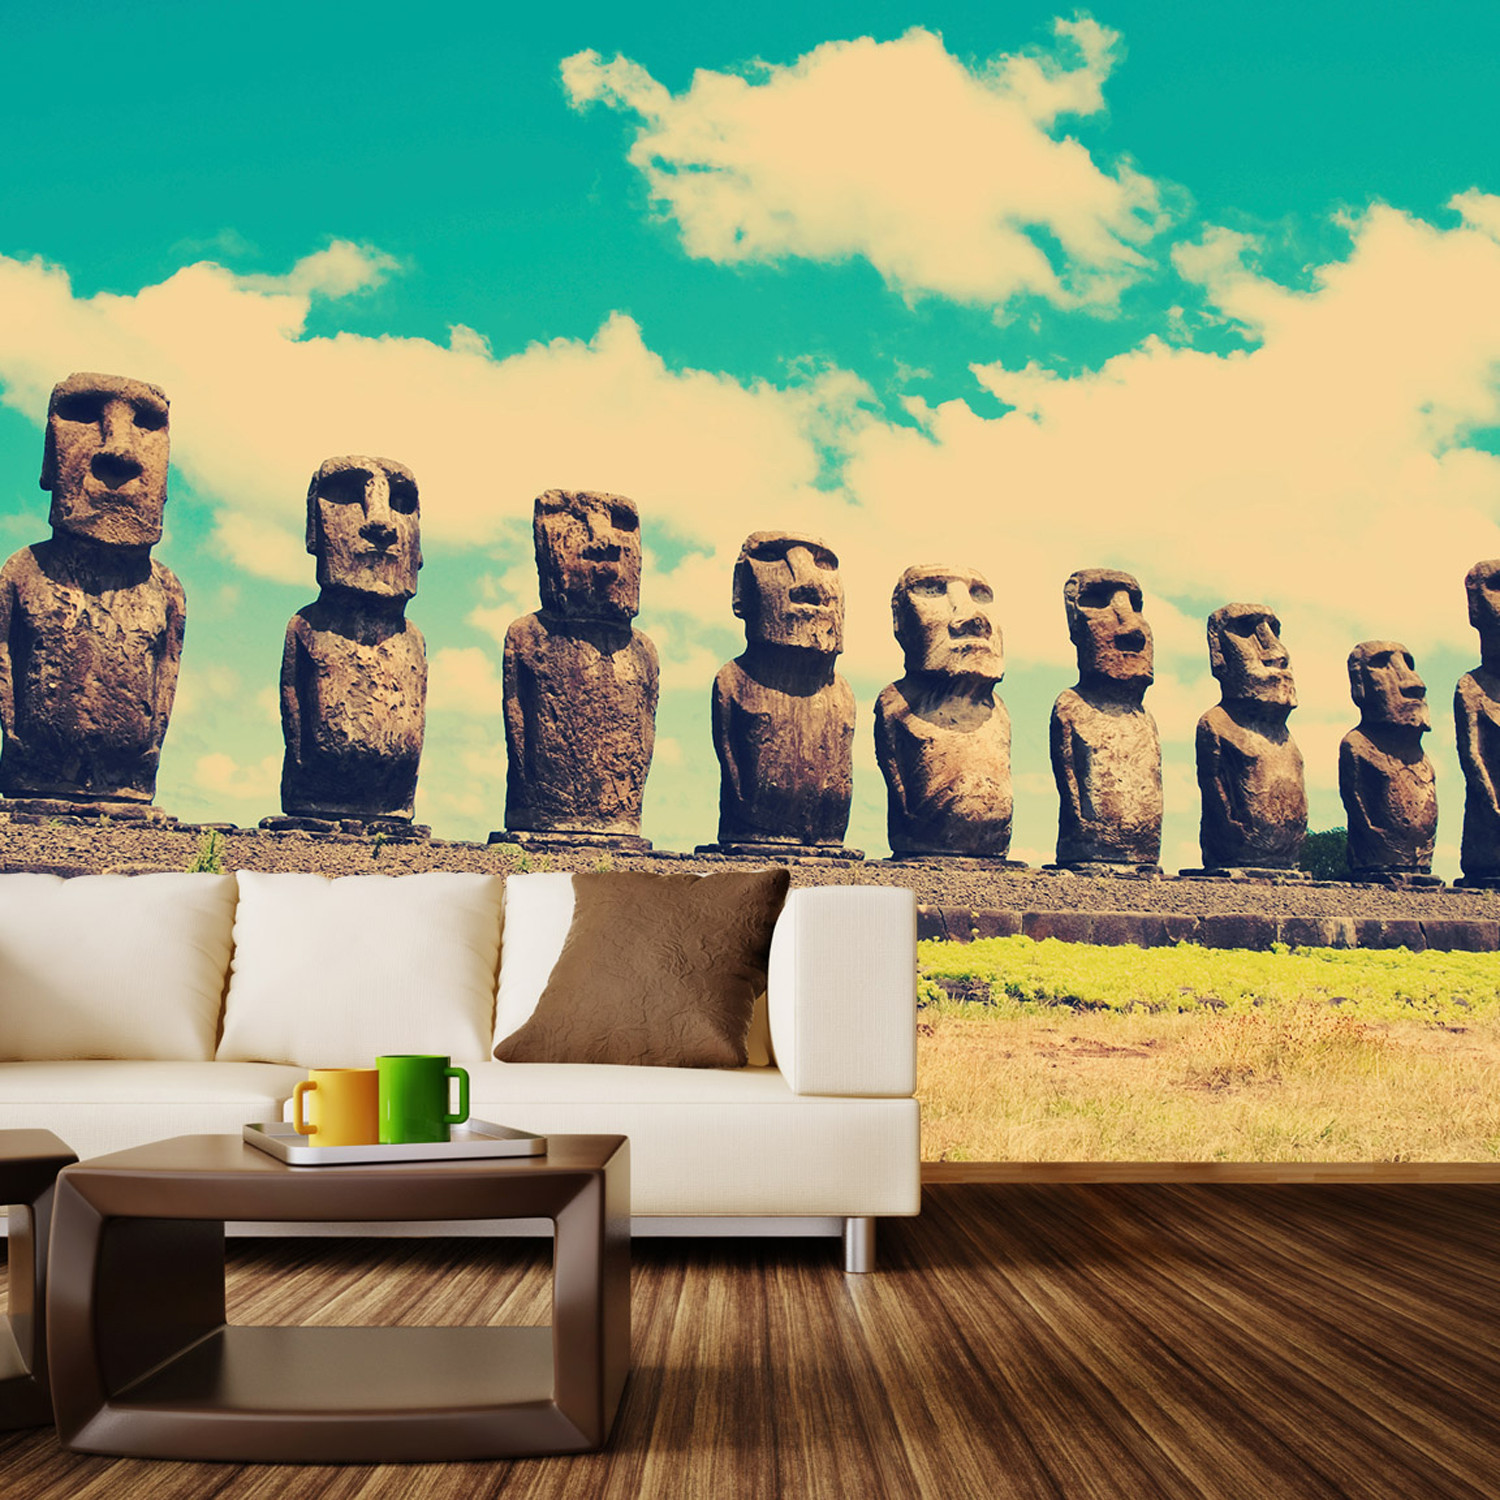 easter island wall mural decal 100 l x 100 w walls. Black Bedroom Furniture Sets. Home Design Ideas